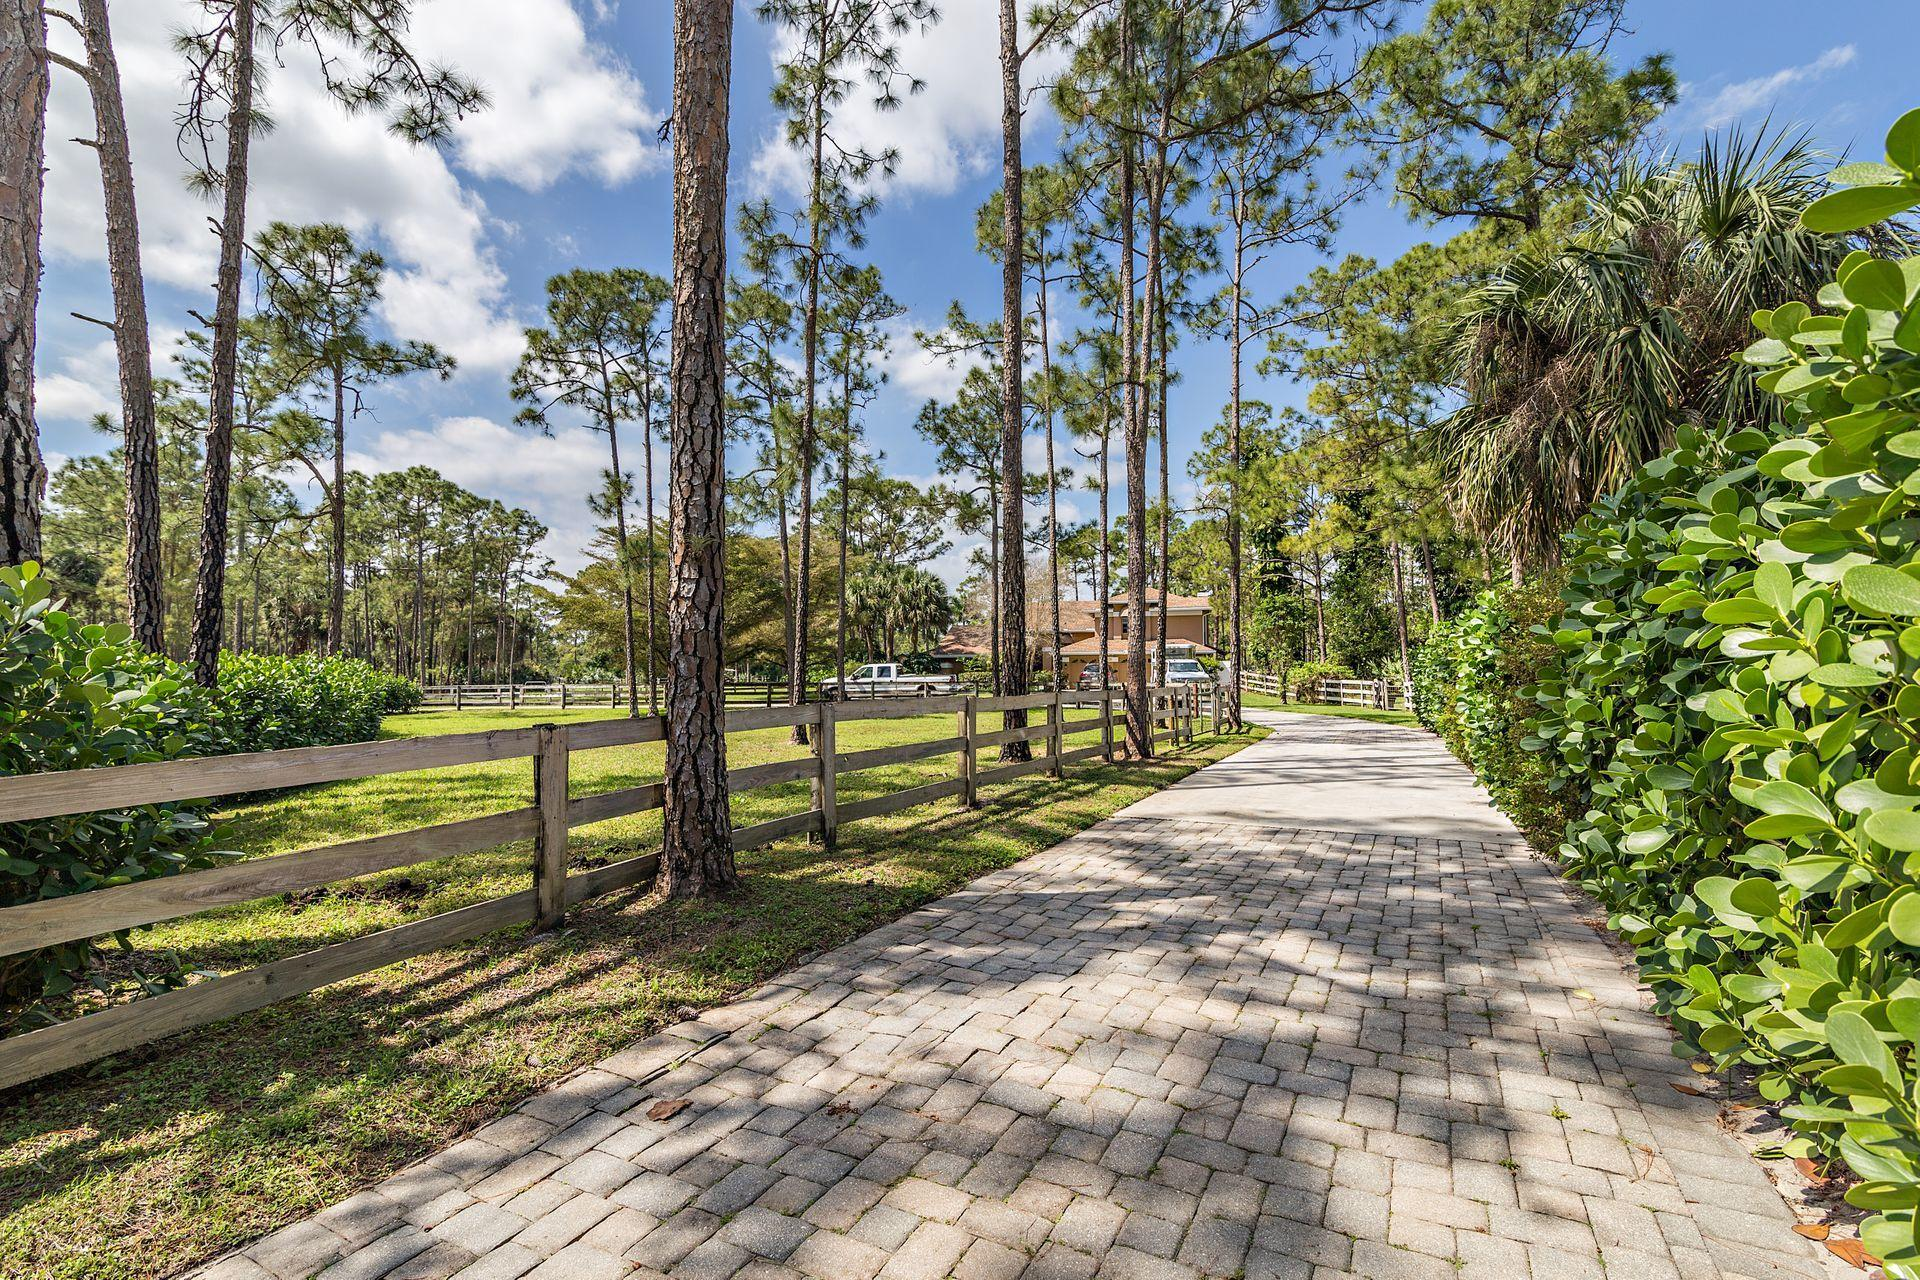 All sizes approx, Beautiful 10 acre equestrian estate impeccably maintained. This property has every equestrian amenity that a professional or serious amateur rider could desire. 10 stall main barn, two run in sheds with a total of 5 stalls plus two grooming stalls. Two tack rooms, one with sleeping quarters, kitchenette and bathroom. Large feed room, two office areas one equipped with spacious living quarters!  Barn has its own washer and dryer! Auto waters in 6 stalls, run in paddocks off 7 stalls. Fly spray system and newer water system. Beautiful dressage arena that is privately hedged! A round pen, 7 Paddocks, 12 large grass pastures, new well system and new water system in 2020, Lift station from the barn to septic. Parking enough for numerous trailers/cars/ boats or motorhomes!  The main house is CBS boasting lots of room for entertaining! Pool and patio will be a favorite place to relax! Master bed and bath are on the main floor, spacious kitchen with sunny breakfast area. Lots of natural light pours in from the many windows! Paver brick circular driveway, property is fenced and cross fenced.  Two sprinkler systems that pull from the canal. This property is one of the closest to the Caloosa Horse Park!! This will not last long!  Seasonal Tenant in main house until April, pictures of main house to come soon, need some notice to show main house.   The wonderful community of Caloosa is an equestrian community that consists of 350 five acre home sites in Palm Beach Gardens. Fifteen minutes to Fla. Turnpike, 95 and the Gardens mall. Twenty five minutes to downtown West Palm Beach & Palm Beach International Airport. Caloosa's 32 acre horse park makes this neighborhood a real estate gem in Palm Beach County with over 30 miles of interior horse trails. Caloosa's community amenities include: dressage arena, a riding arena, jump course and a cross country area. Multiple tennis courts, children's playground, basketball courts and a barbecue area, community meeting room and restrooms. The private park is for the exclusive use of Caloosa residents and their guests. Caloosa residents enjoy events such as movie nights, chili cook offs, barbecues, holiday parades, benefit rides, demonstrations, and horse shows.